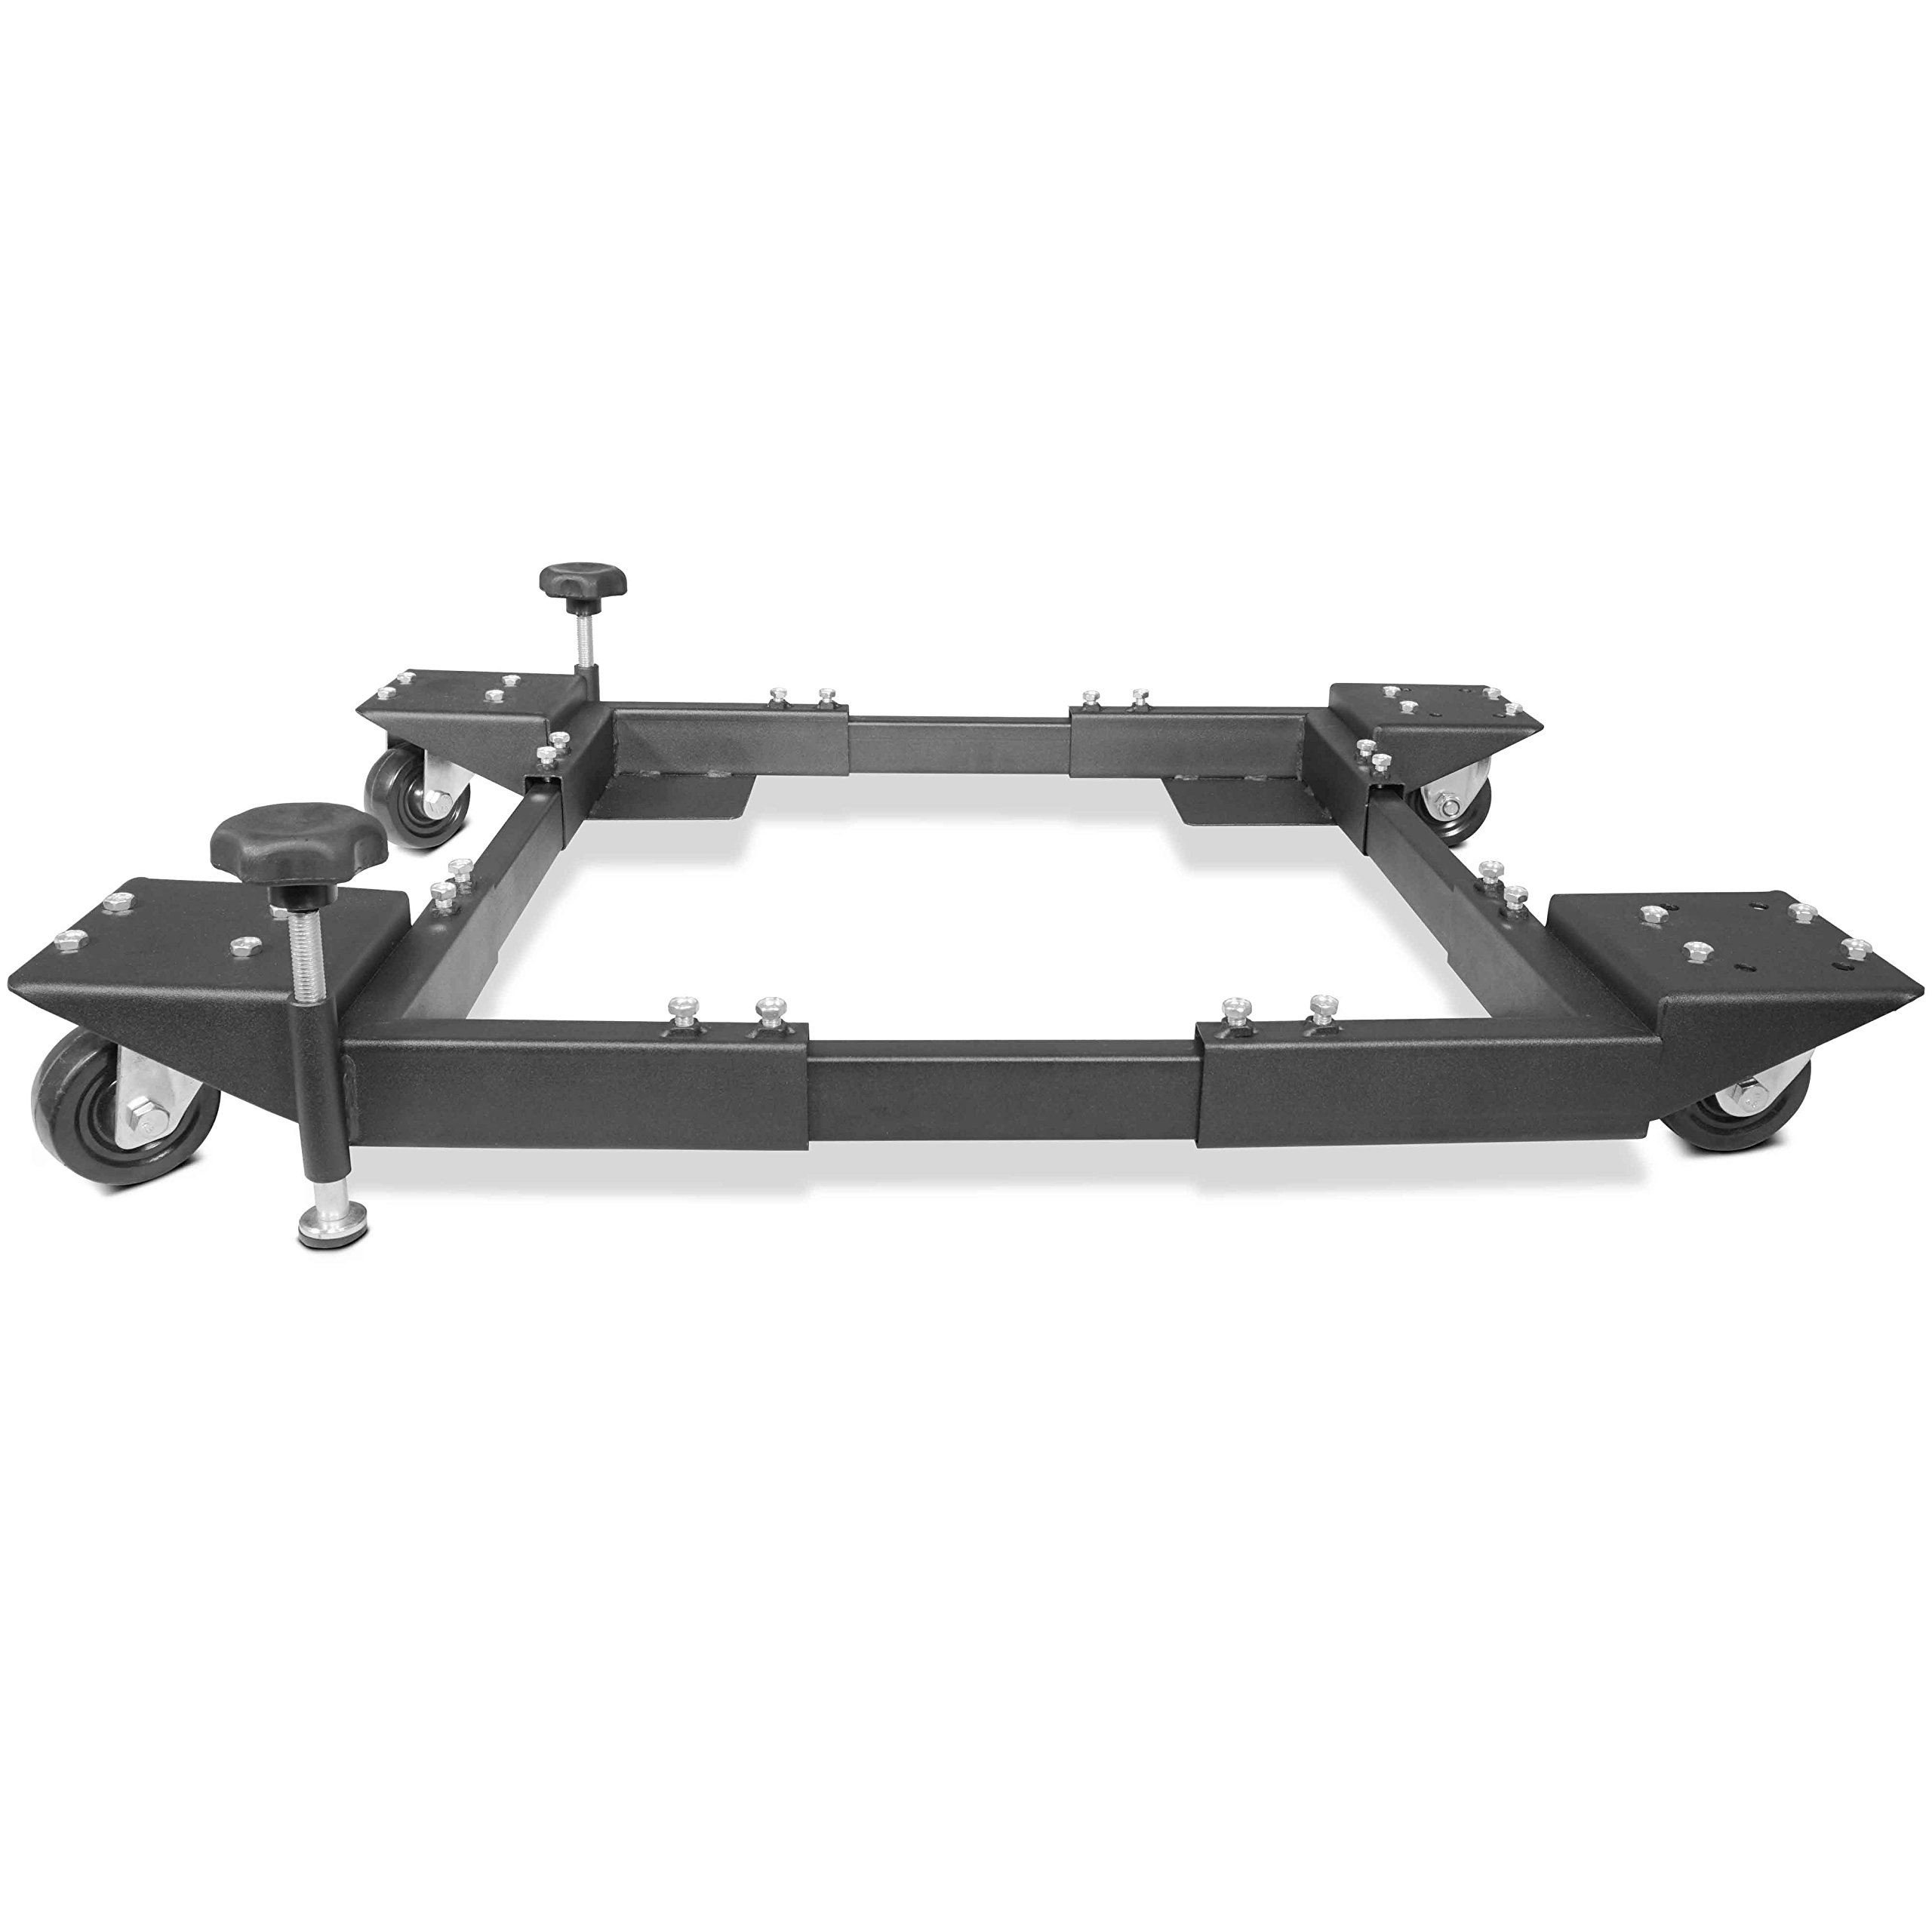 Titan Adjustable Mobile Base Dolly 600 lb Capacity HD Universal Power Tools - Make Your Workshop Portable & Easy To Use by Titan Attachments (Image #3)